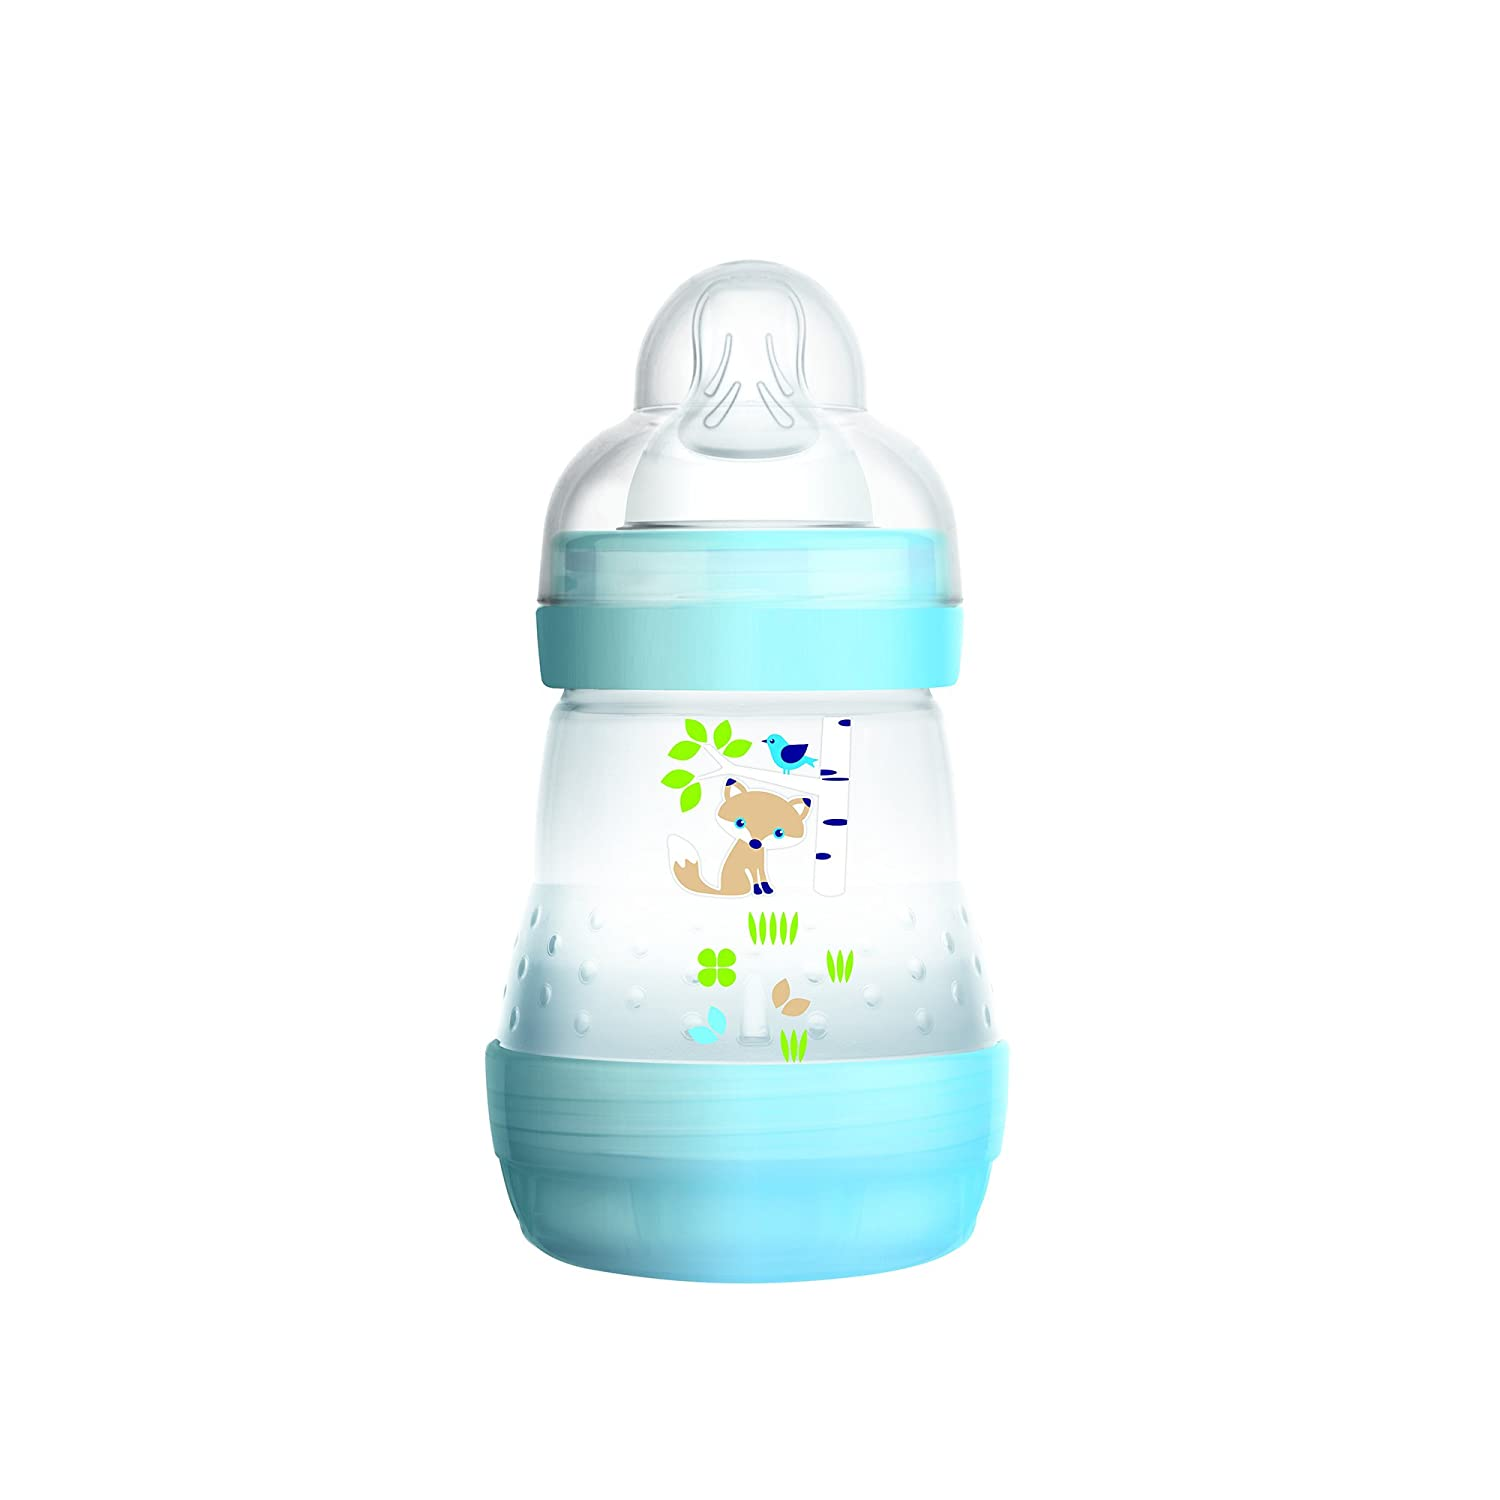 MAM Anti-Colic Bottle, Boy, 5-Ounce, 0 Plus Months, 1-Count, (For Boy) C5021-006-3-1